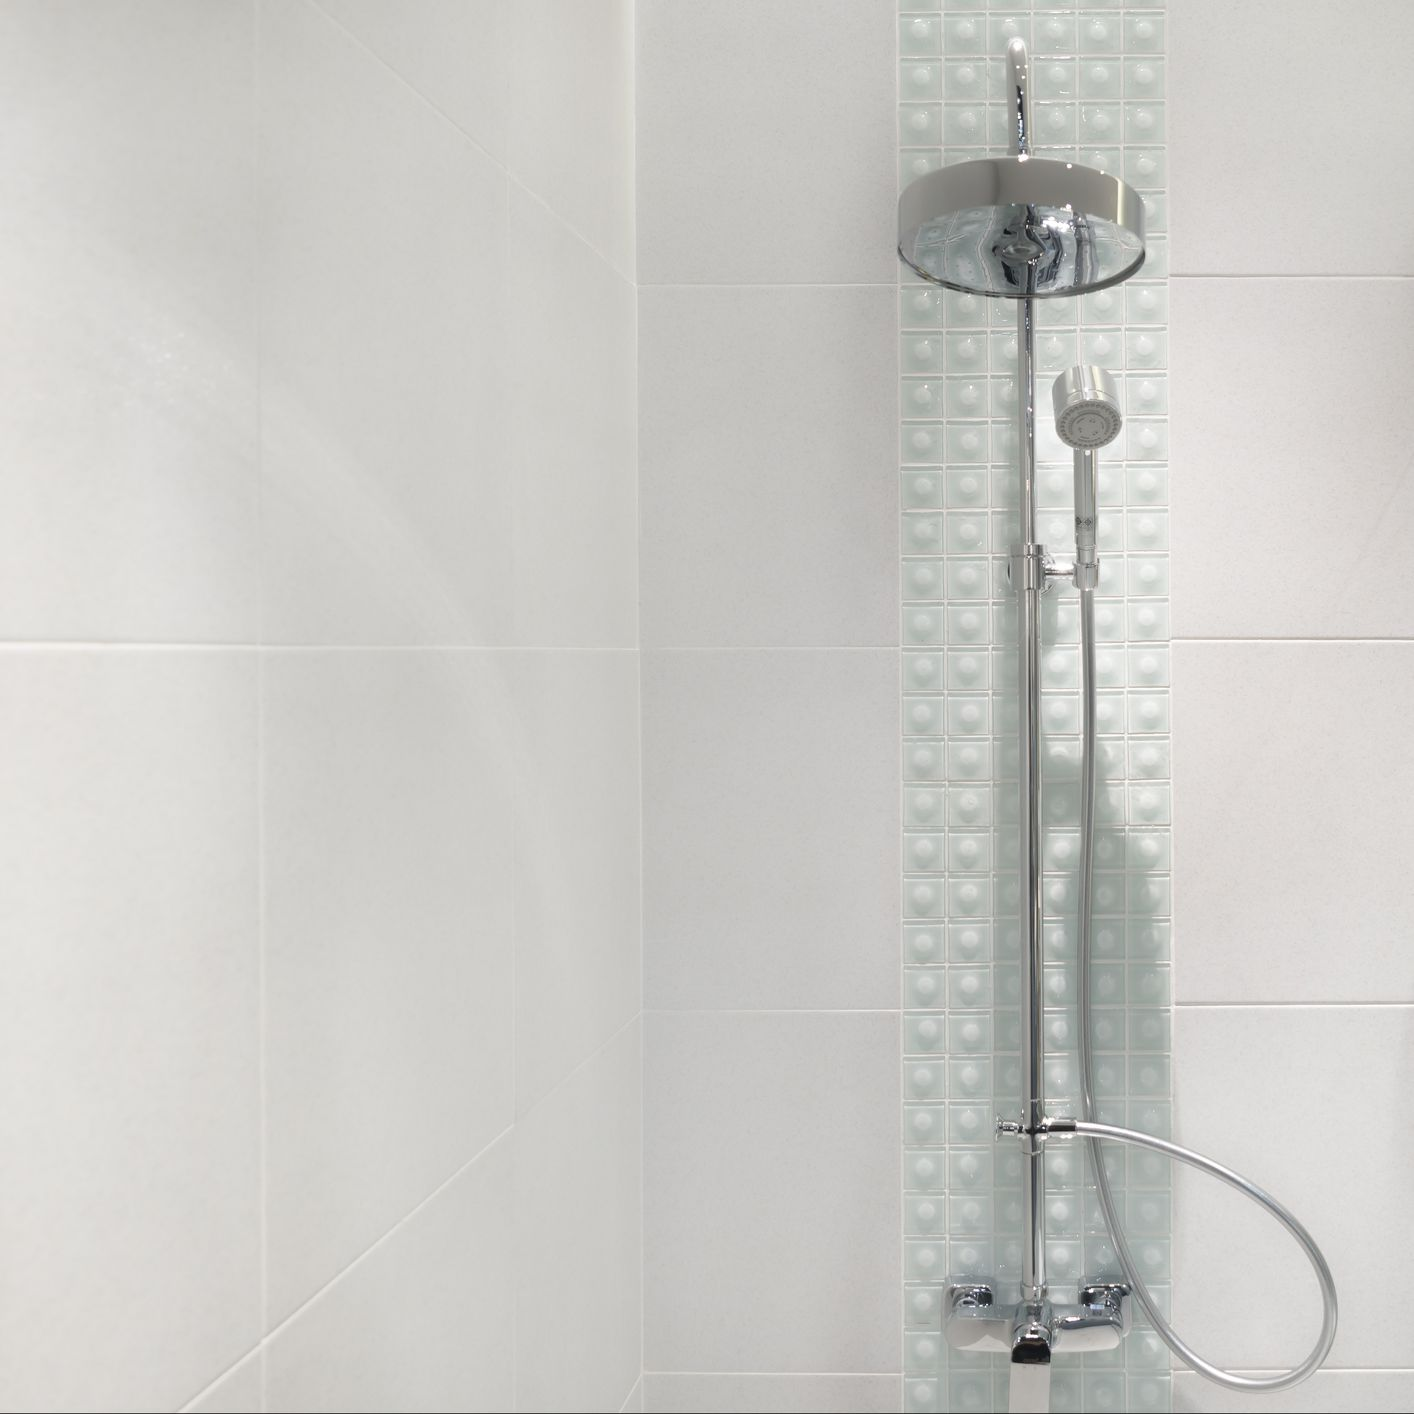 How To Replace The Cartridge On A Mixet Shower Faucet